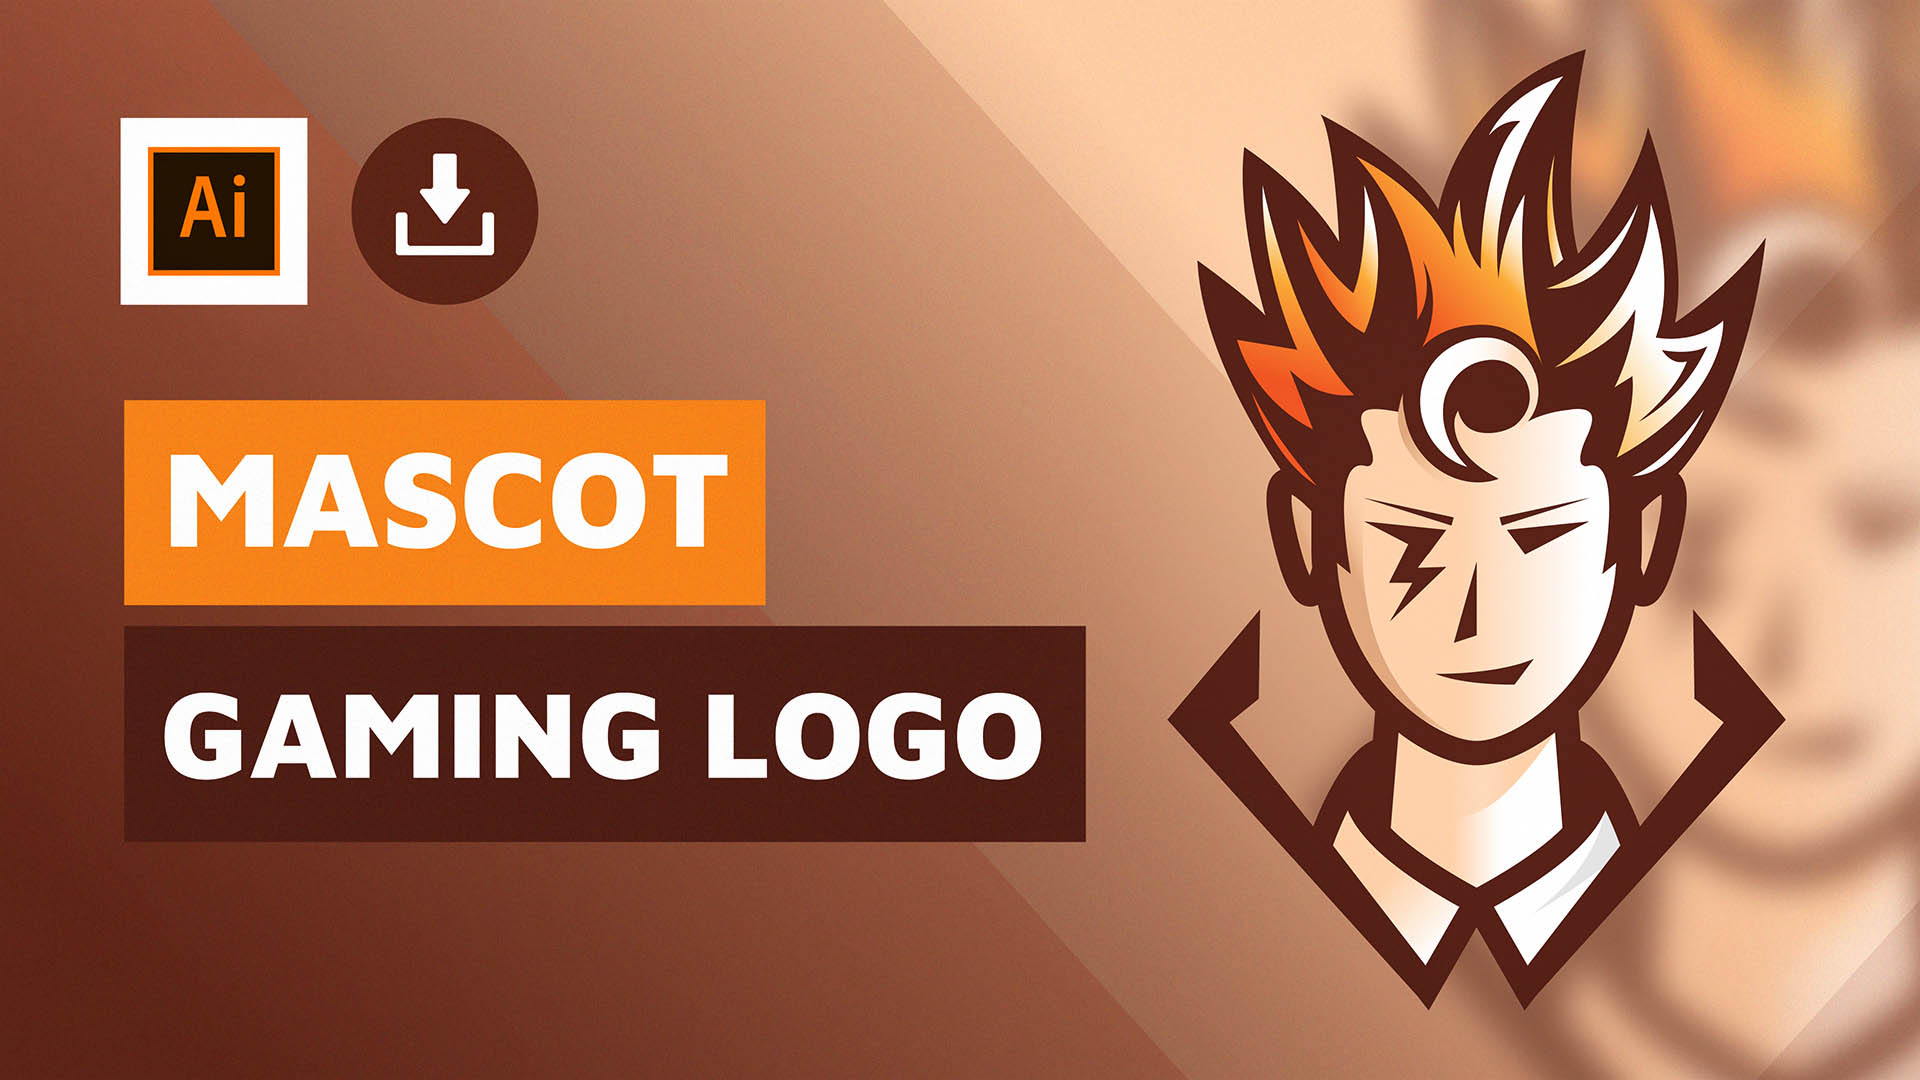 How to make a gaming logo - Mascot gaming logo by DAINOGO